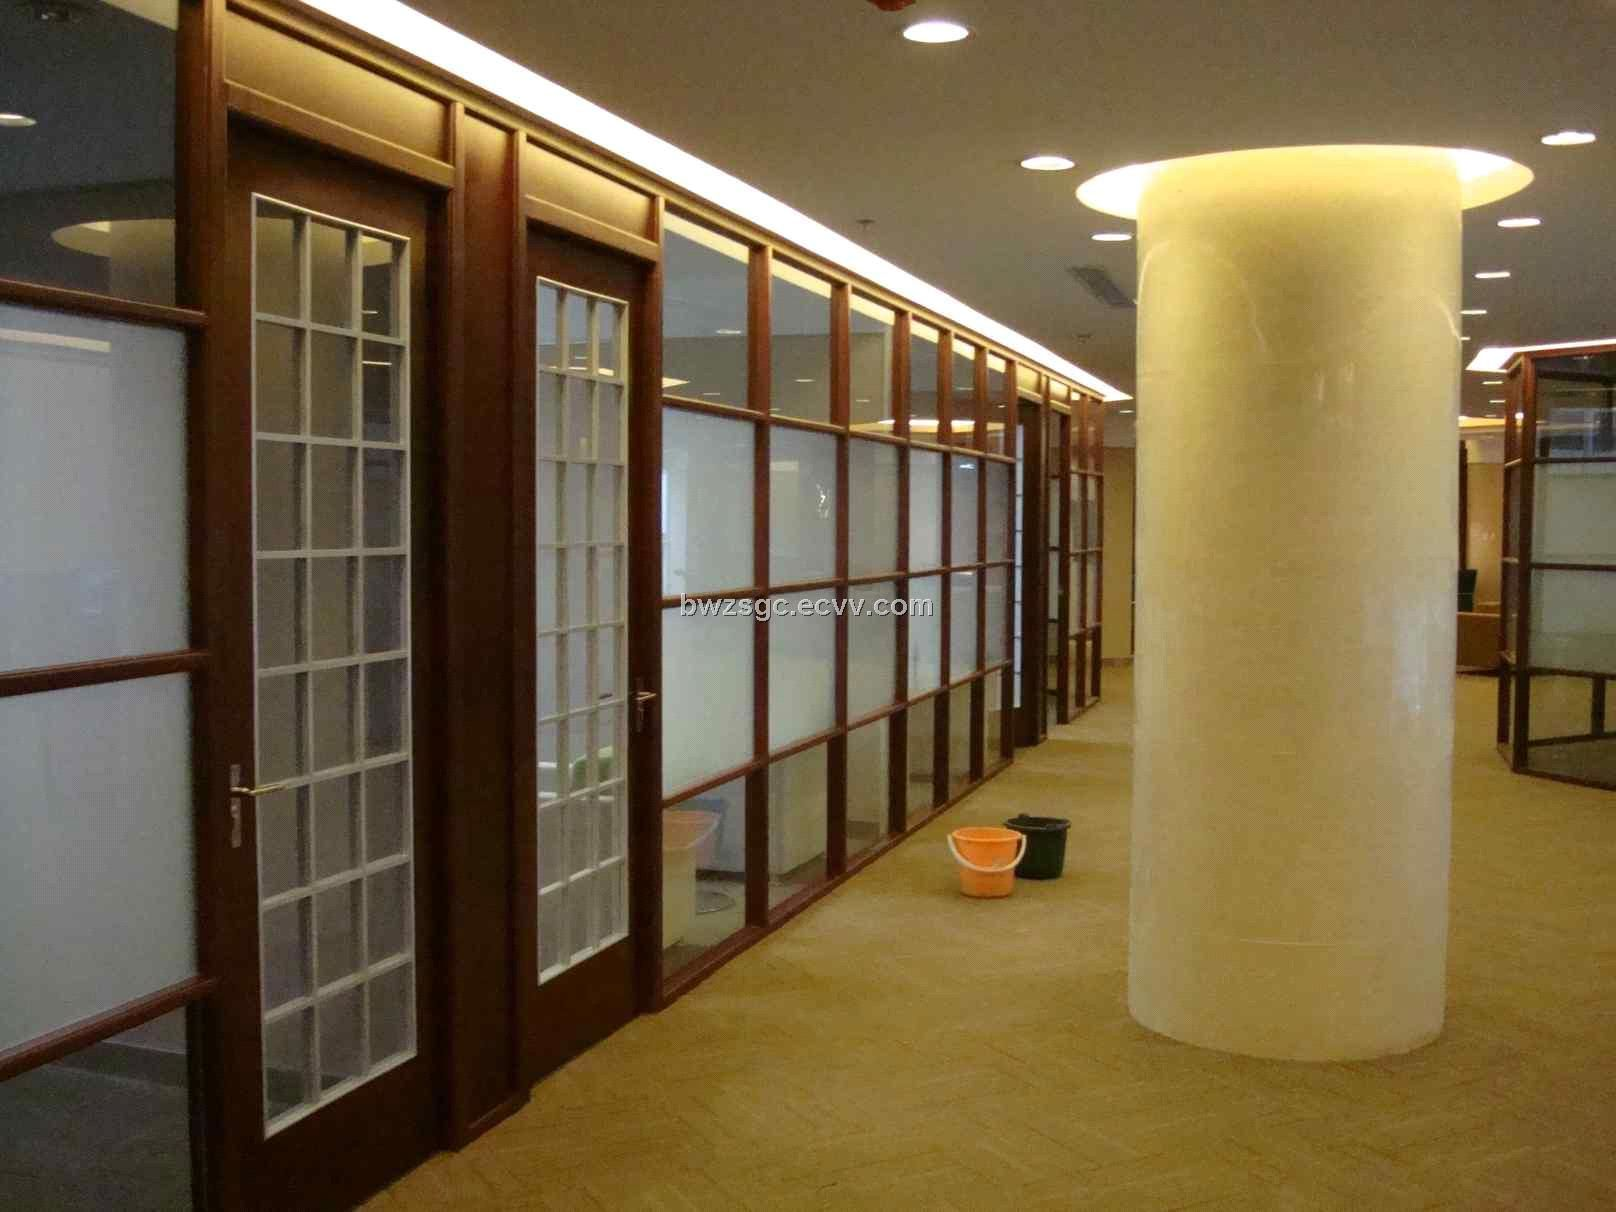 Office Design With Wood Trim Glass Wall Medium 80 X 80